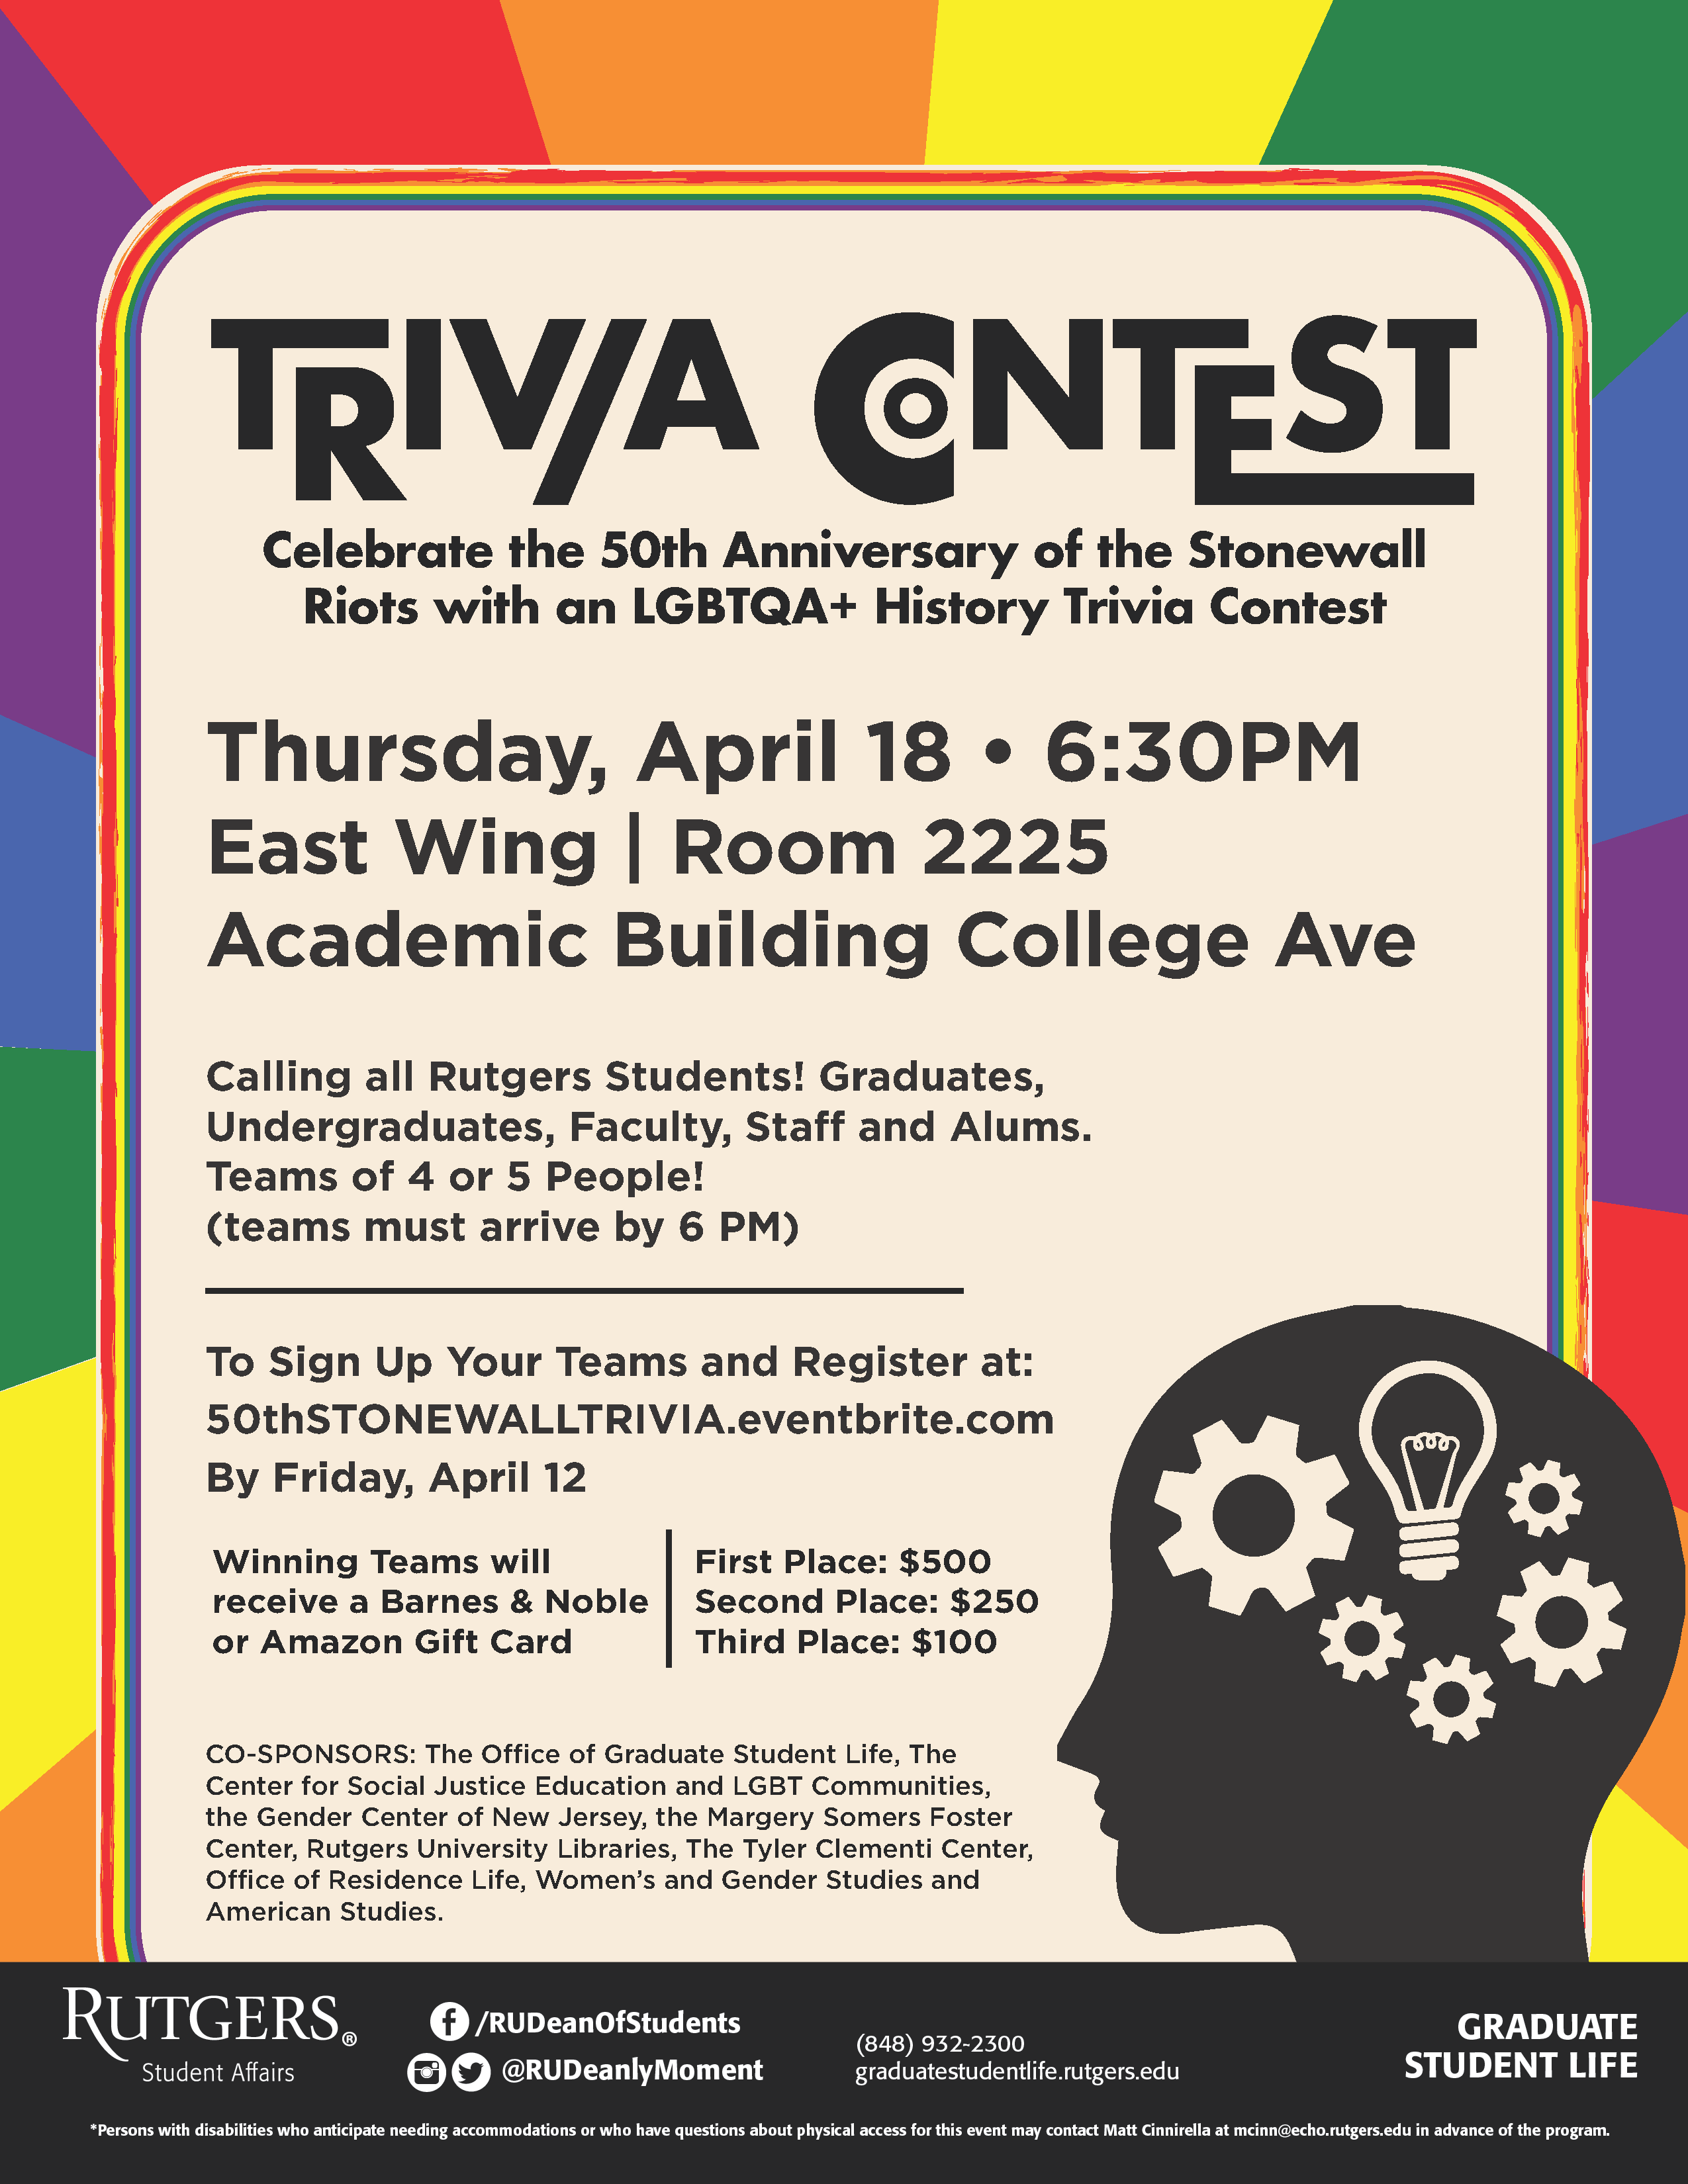 GSL_50th_Anniversary_of_Stonewall_Trivia_Contest_S19